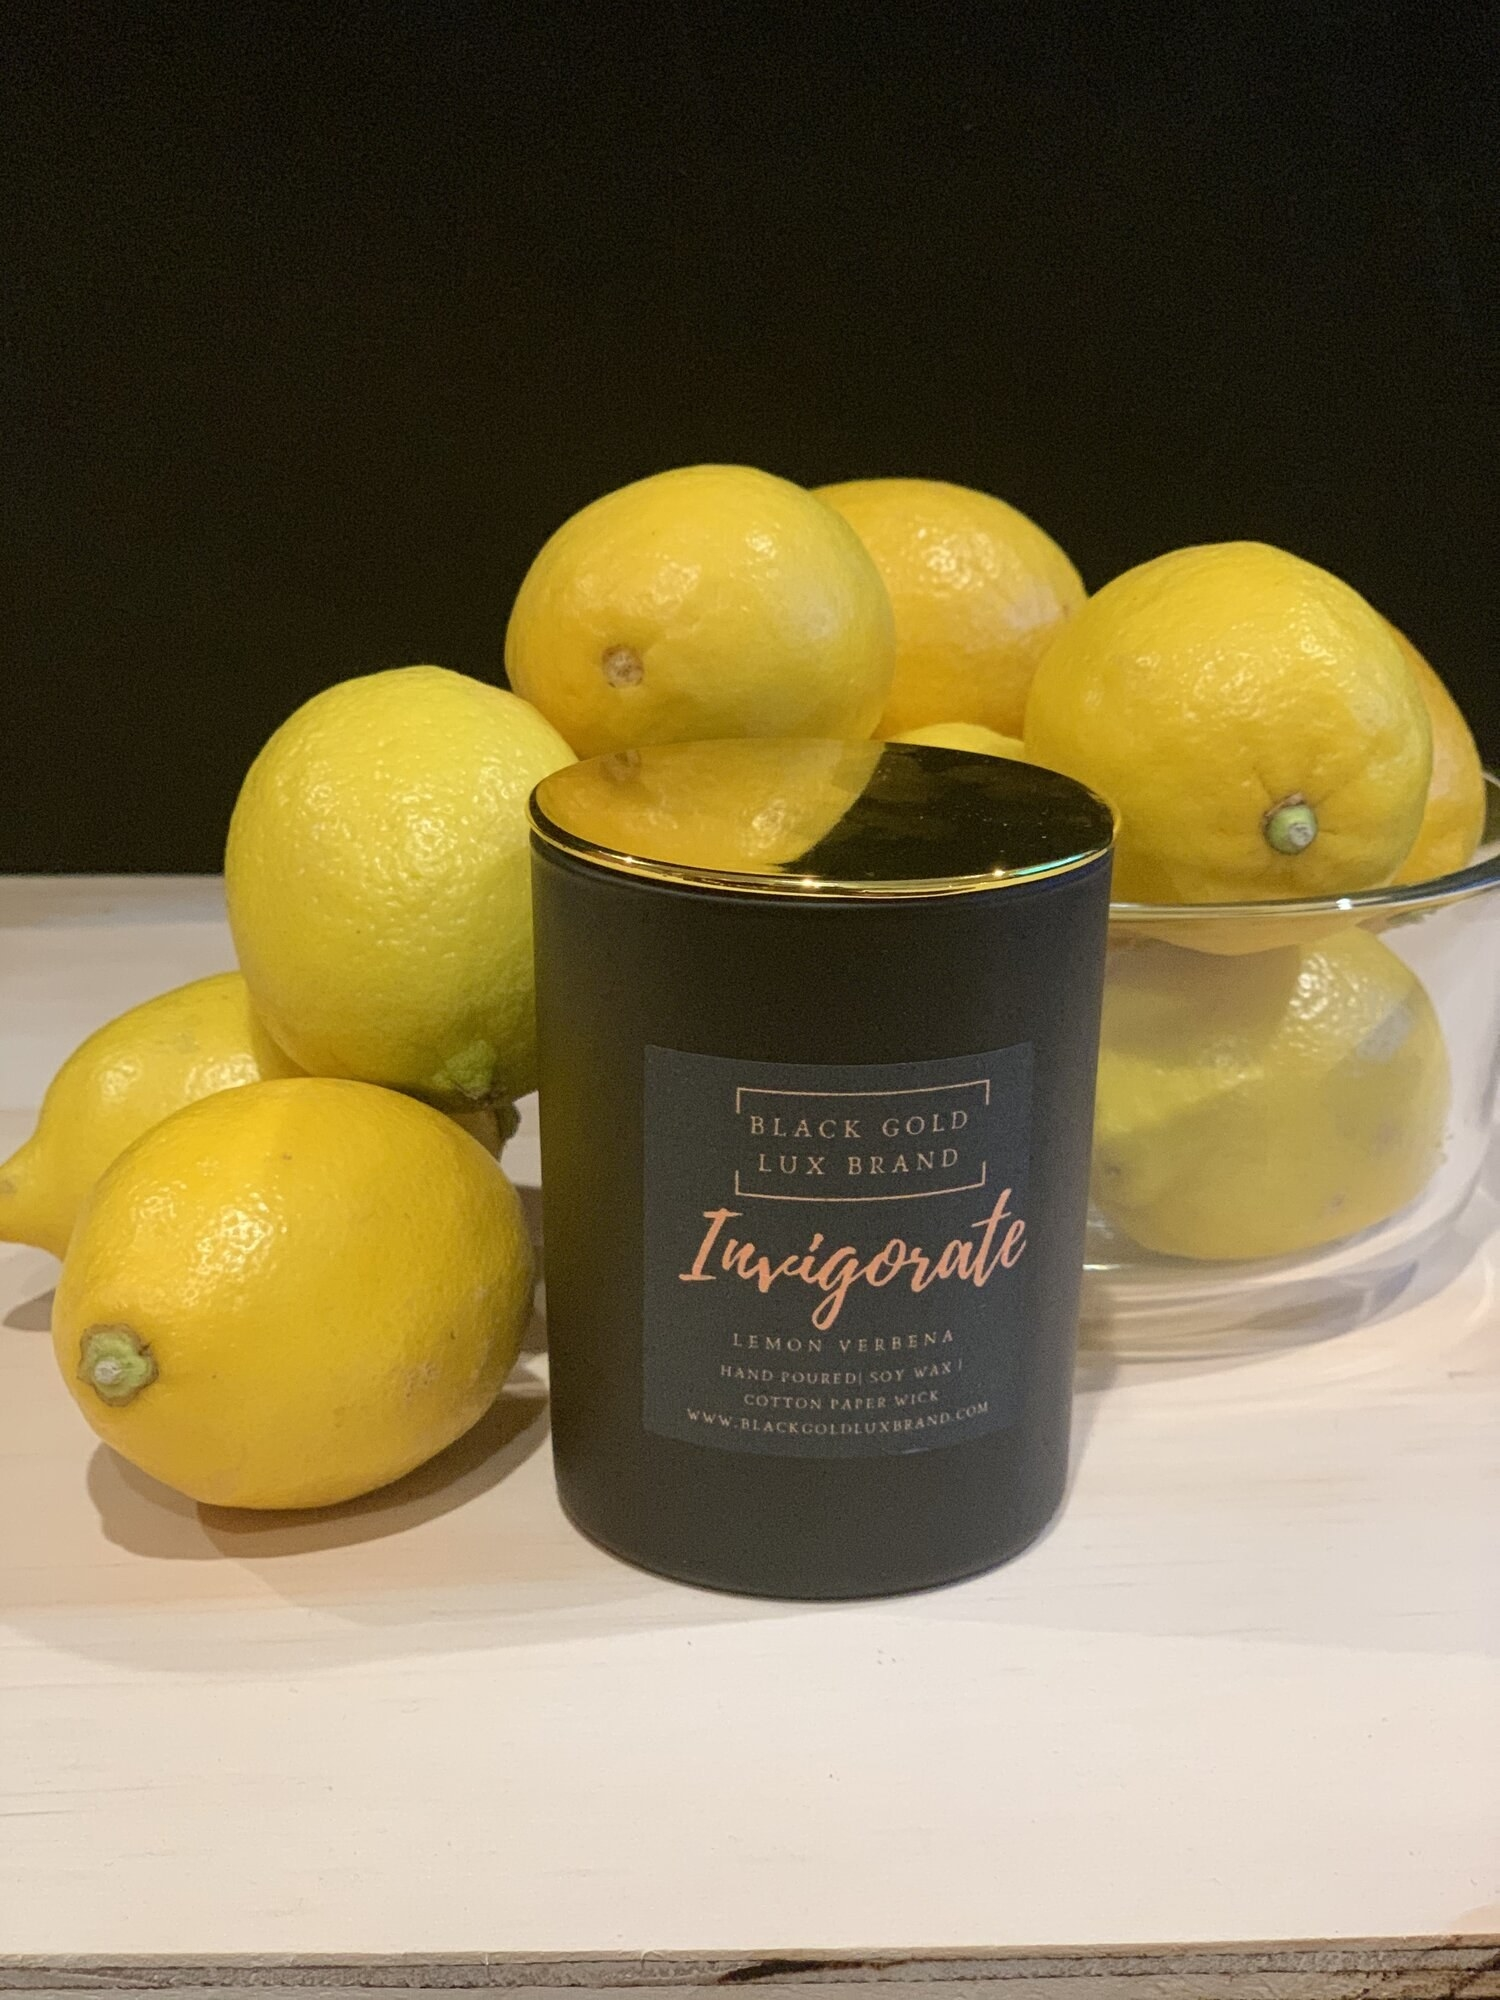 The Invigorate Candle surrounded by a bowl of lemons